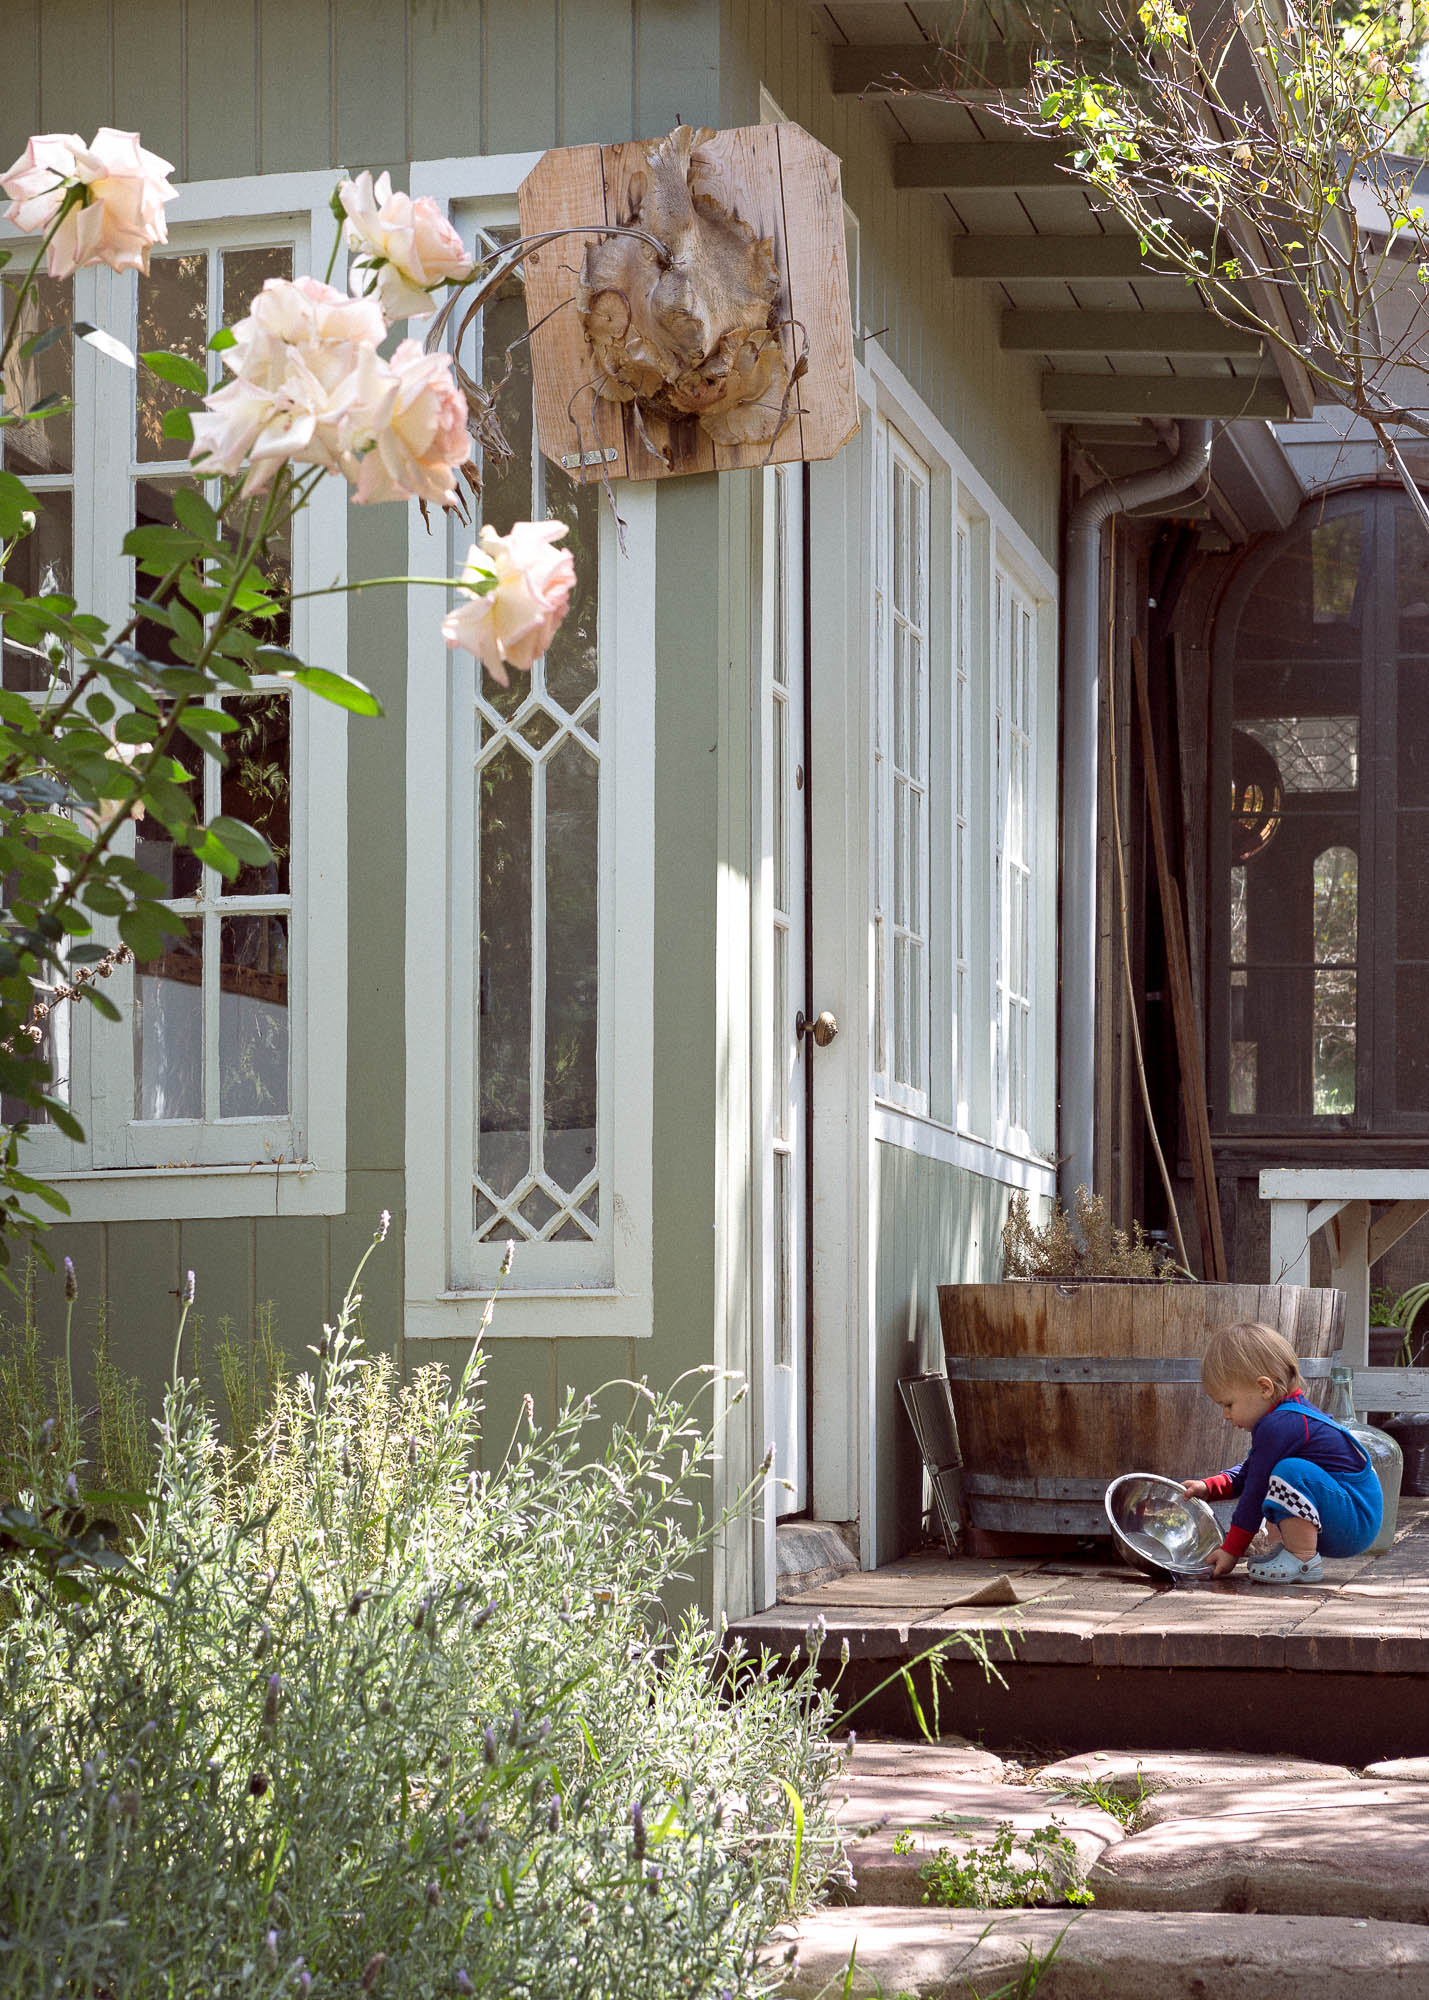 'Only Love Is Real' founder Carly Jo Morgan's house shot ...